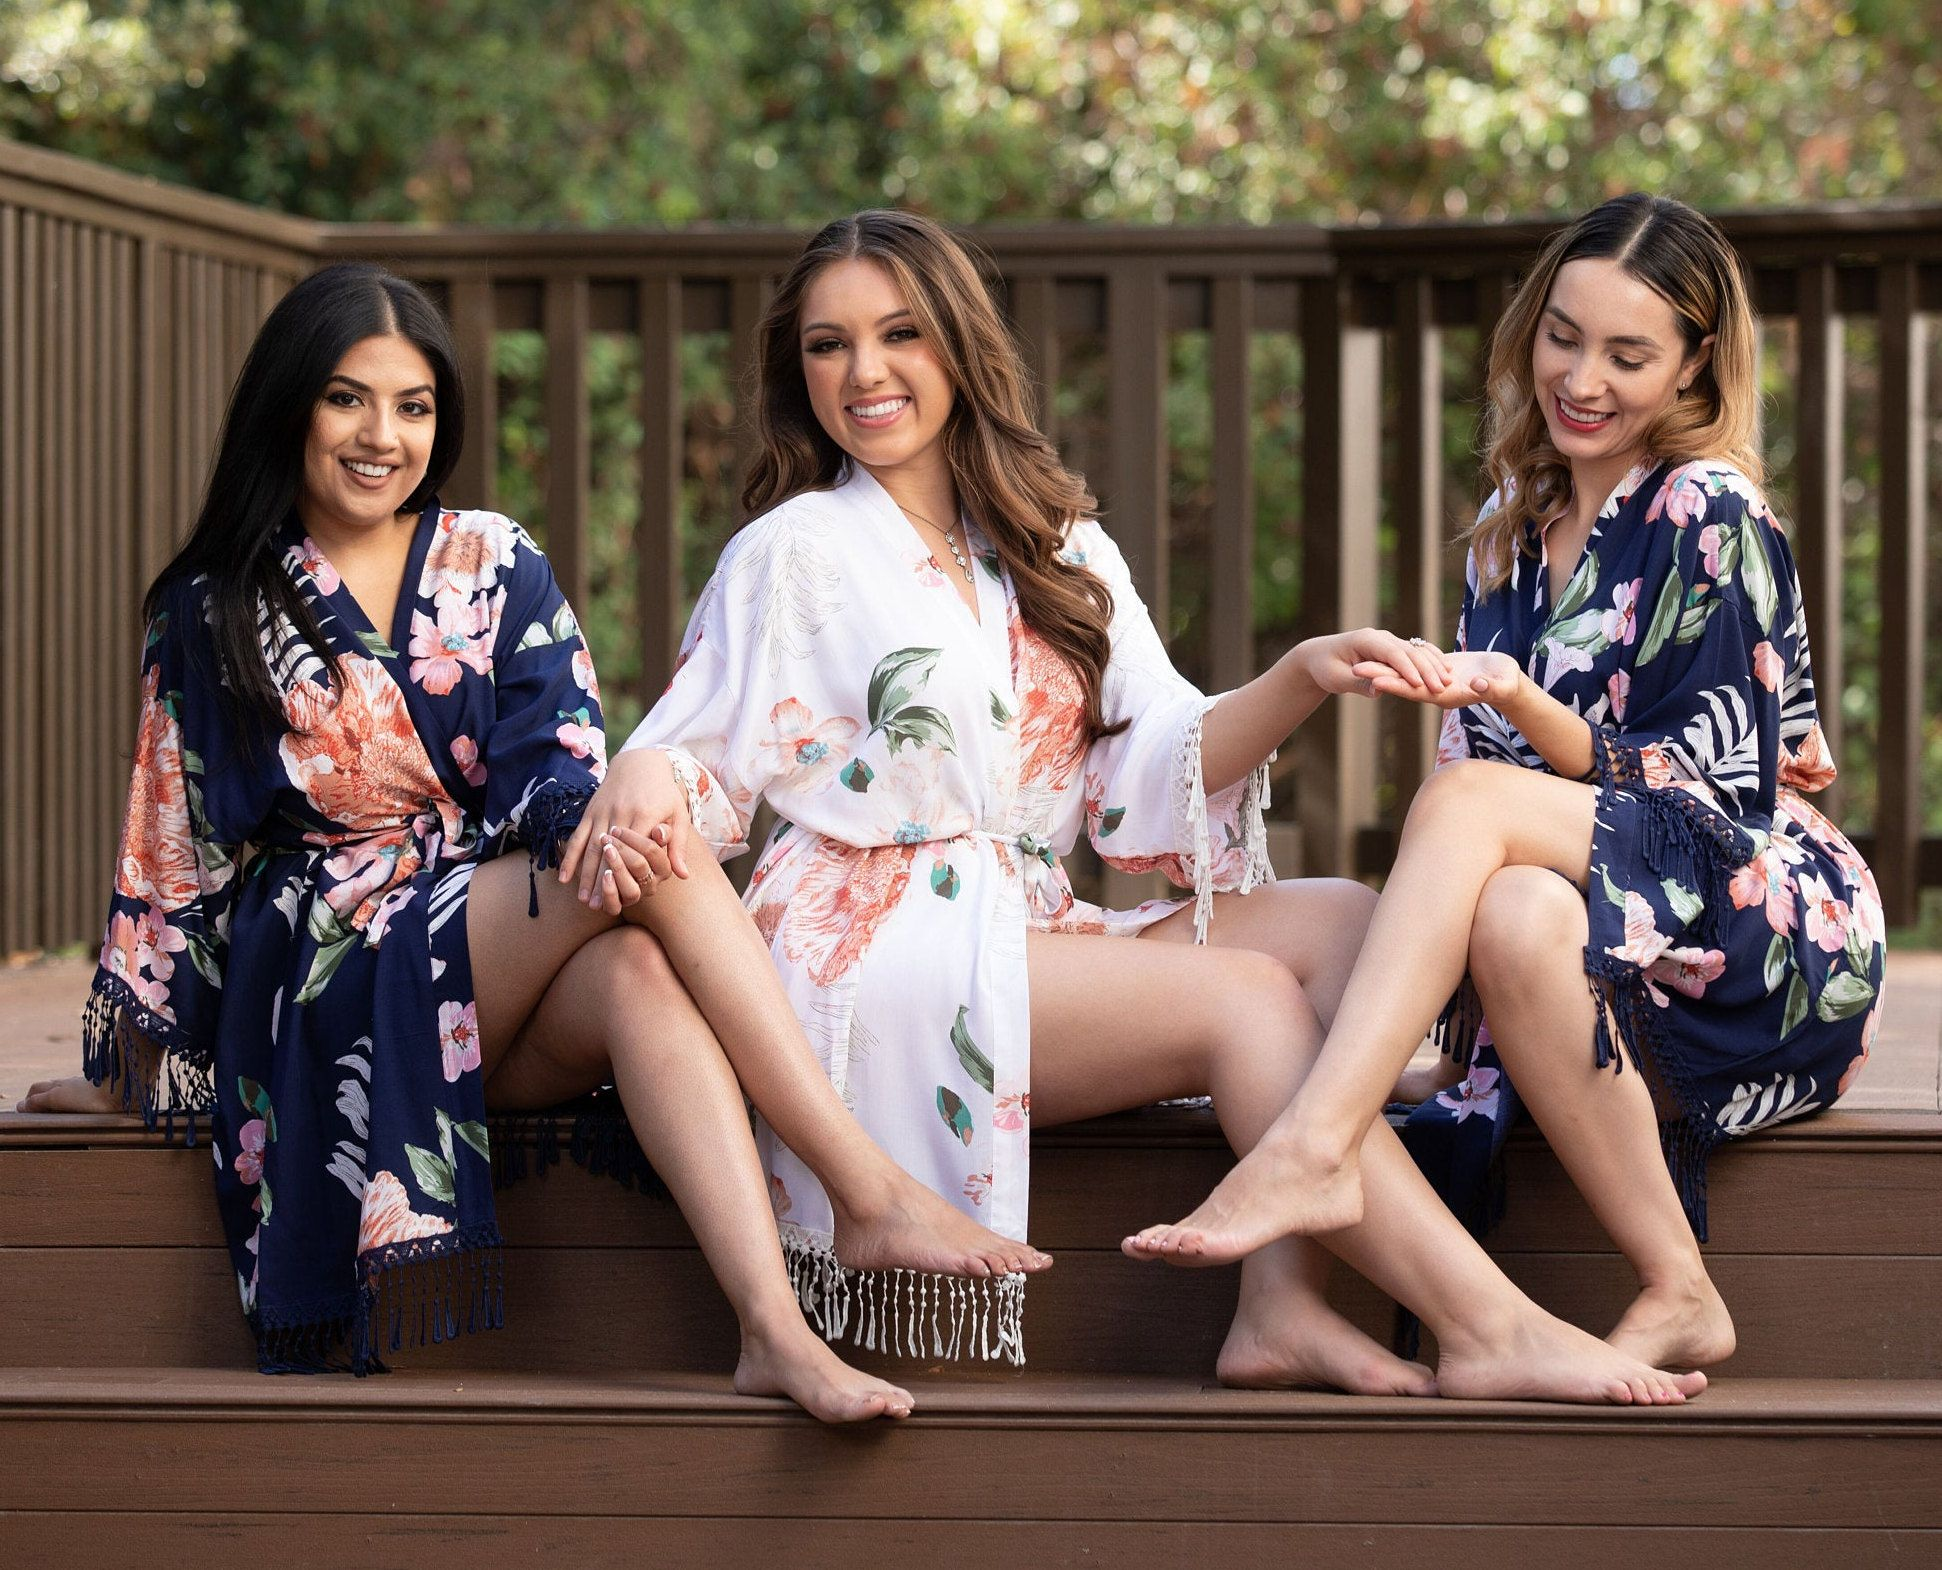 Wedding Day Robe Tropical Print Robe Bridesmaid Robes Bridal Party Robes Personalized Gifts Bridal Lingerie Bridesmaids Gifts